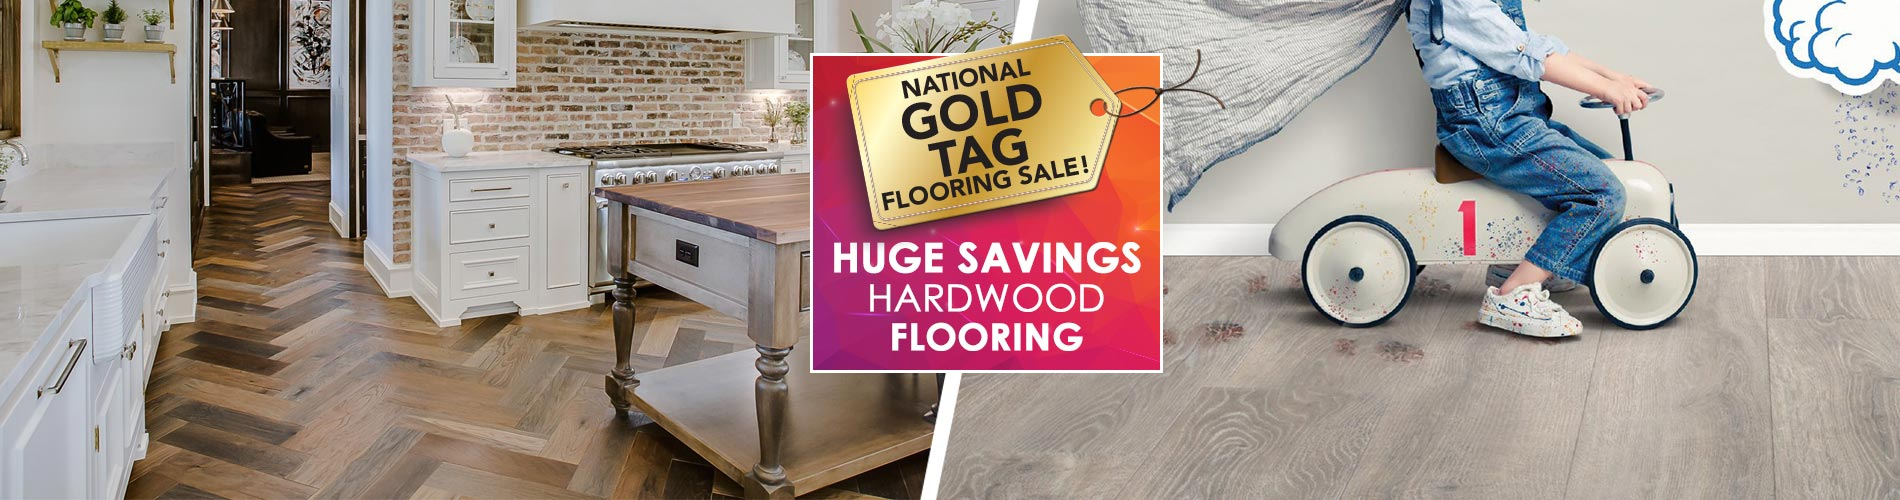 Save on hardwood flooring during the National Gold Tag Flooring Sale at participating locations!